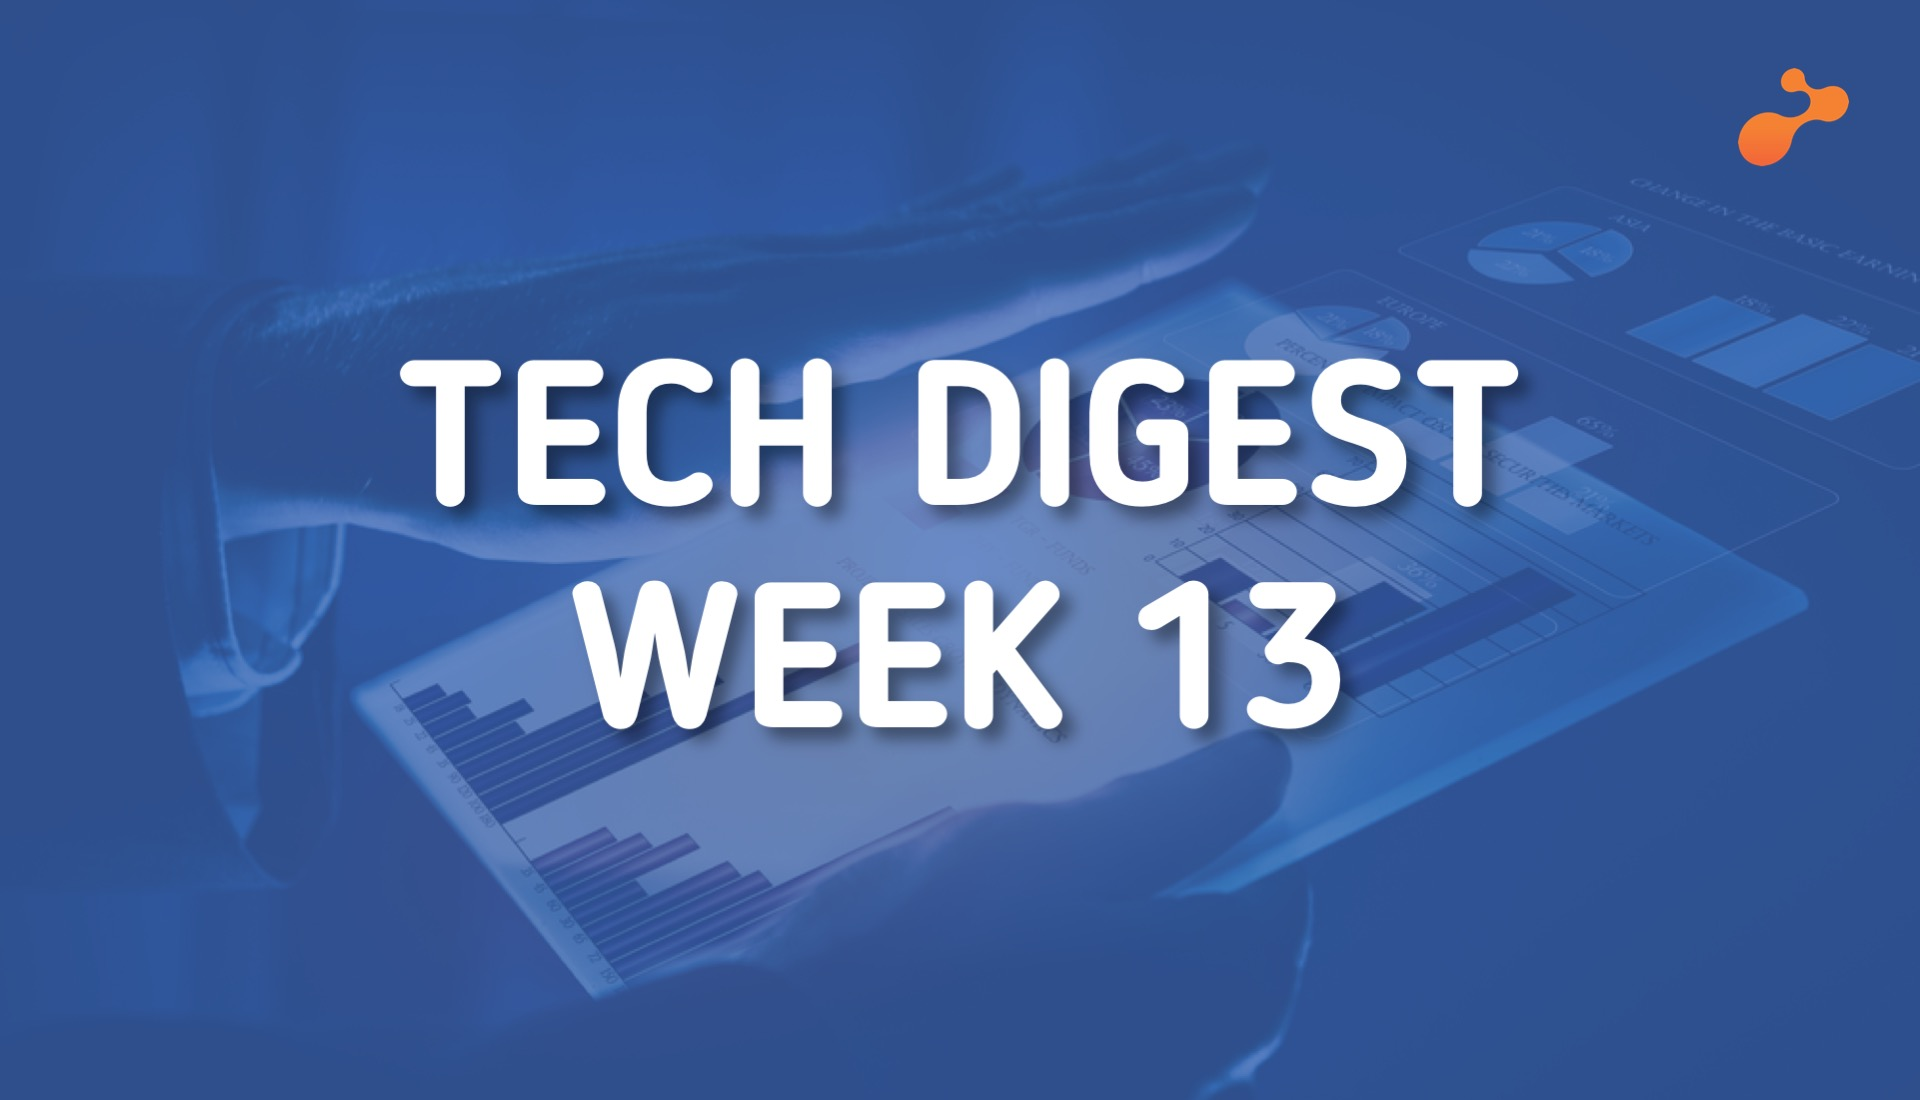 Technology stories handpicked for you- Week 13, 2019